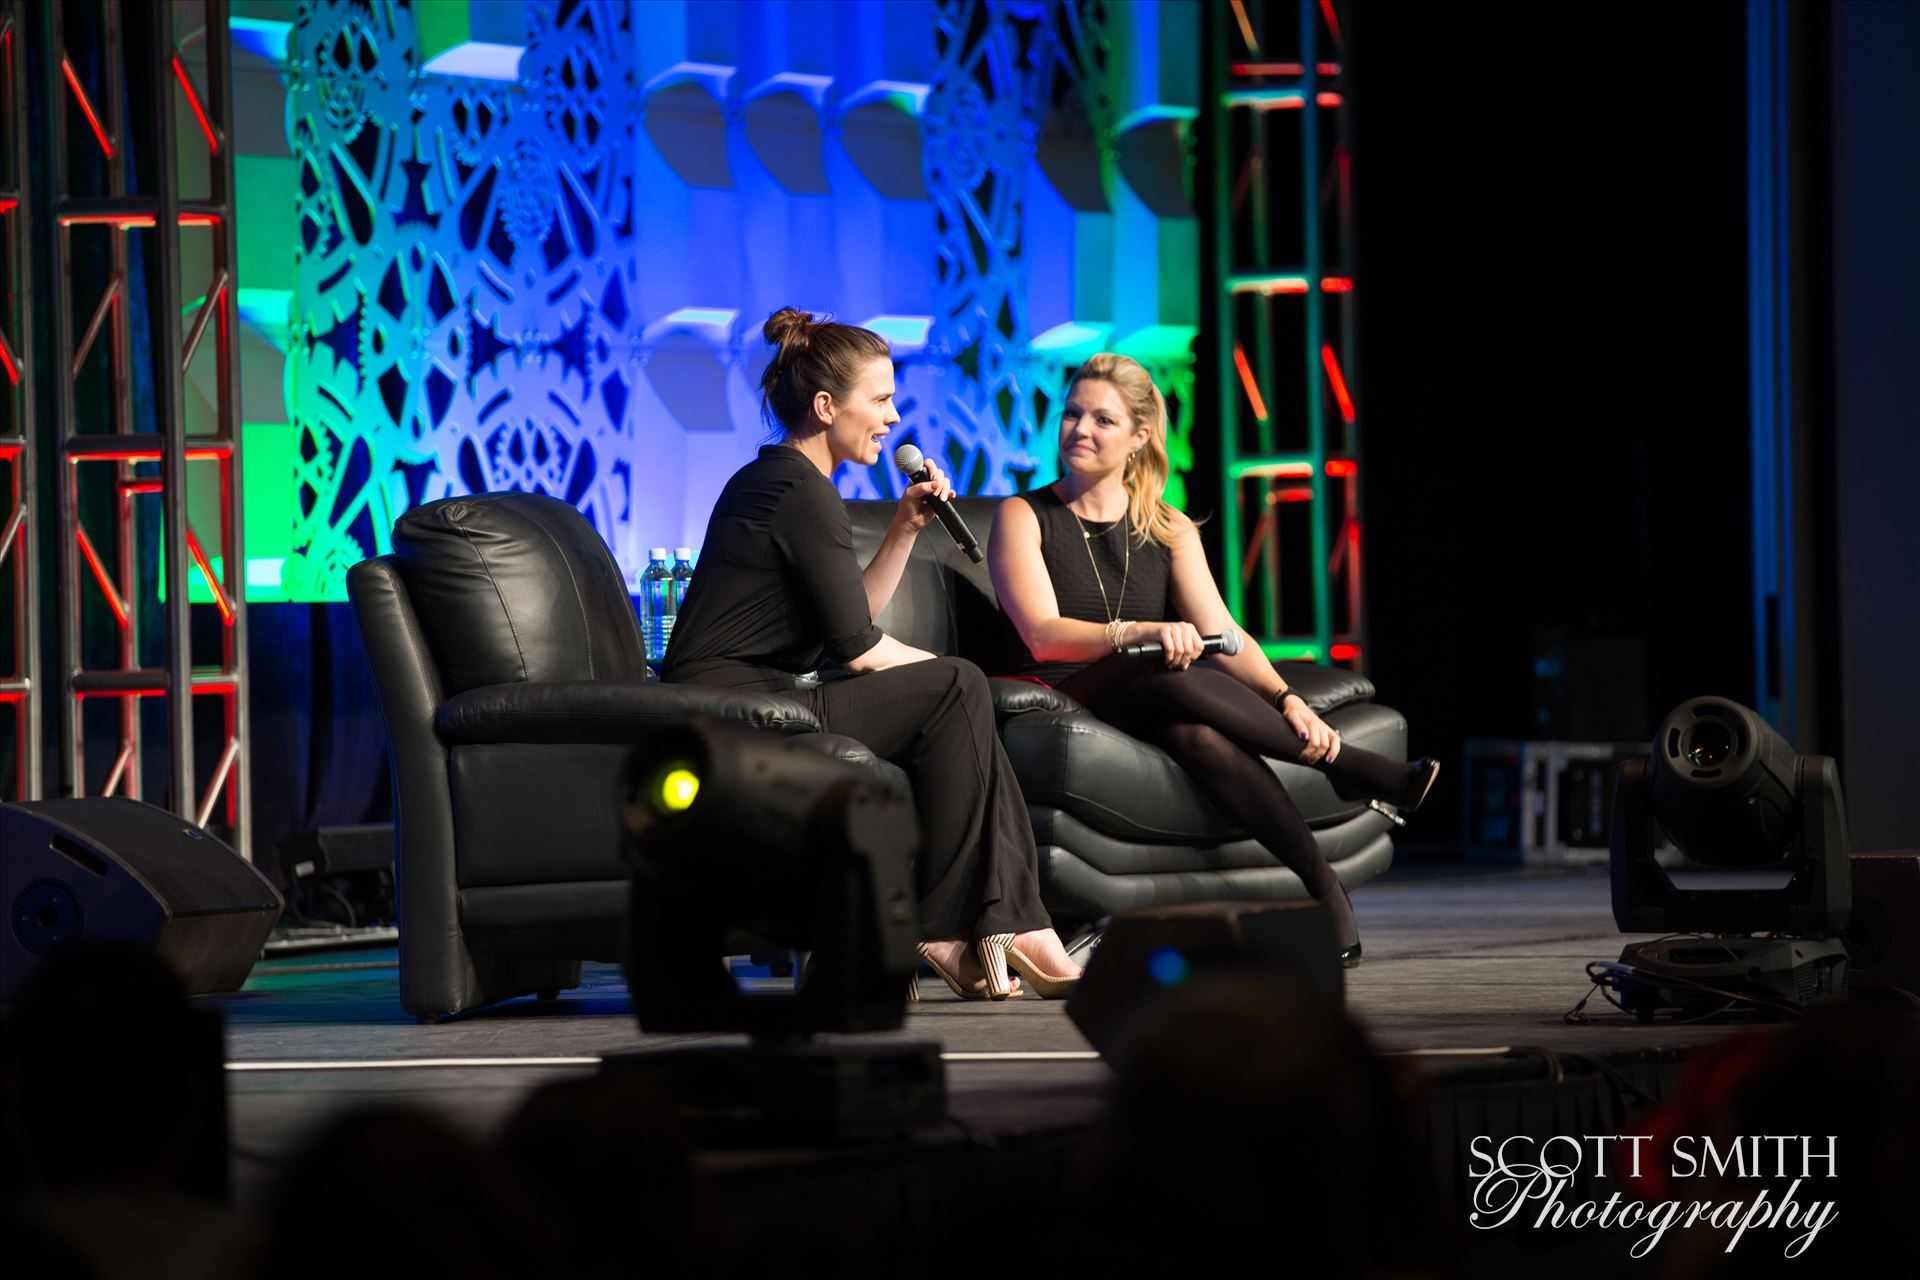 Denver Comic Con 2016 19 - Denver Comic Con 2016 at the Colorado Convention Center. Clare Kramer and Haley Atwell. by Scott Smith Photos